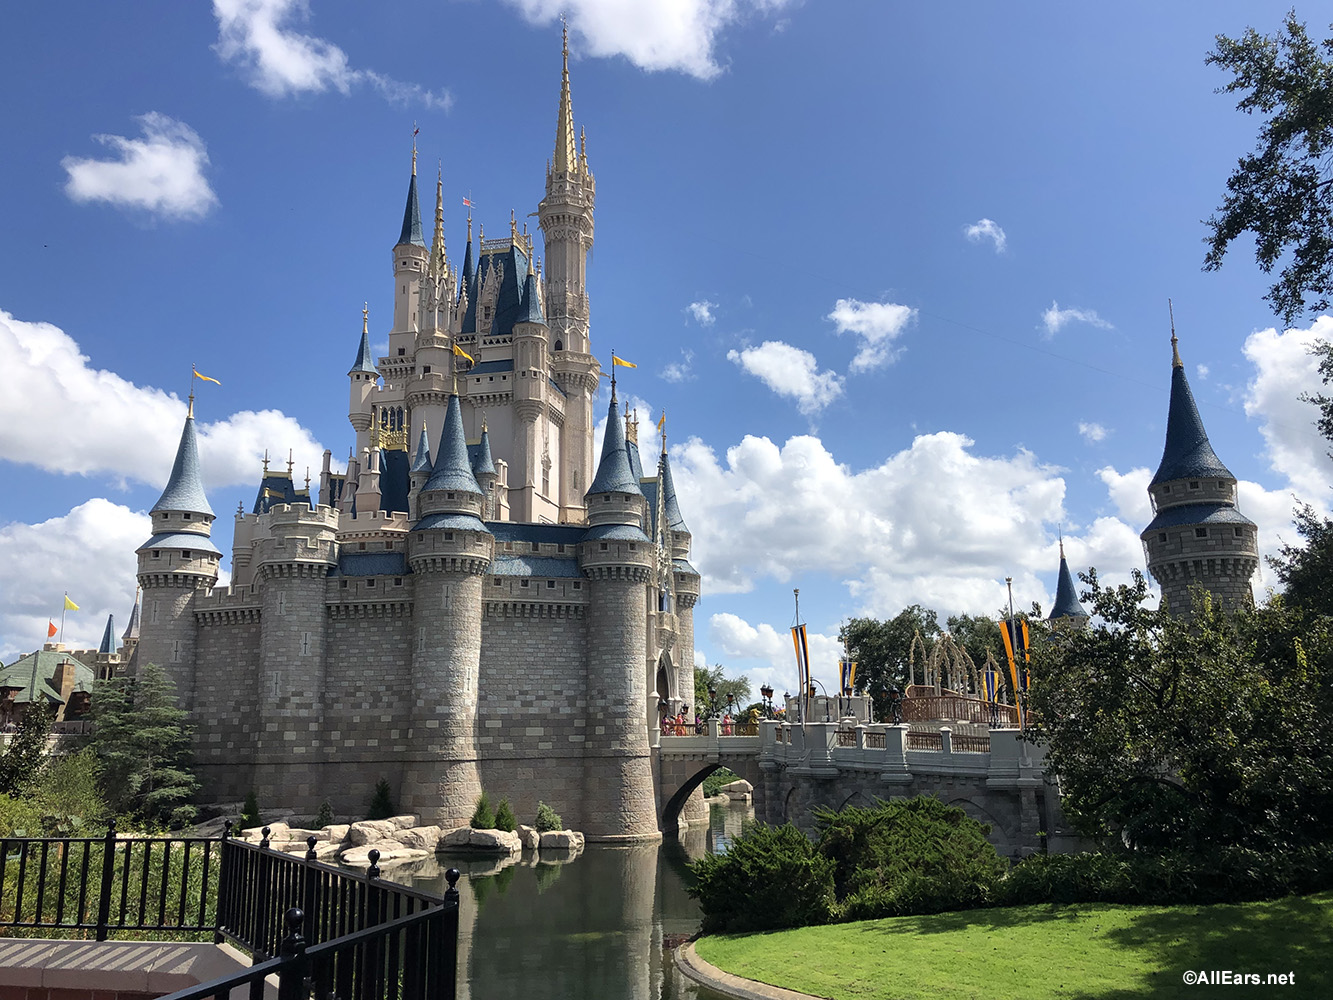 10 Things Nobody Tells You Before You Go To Disney World